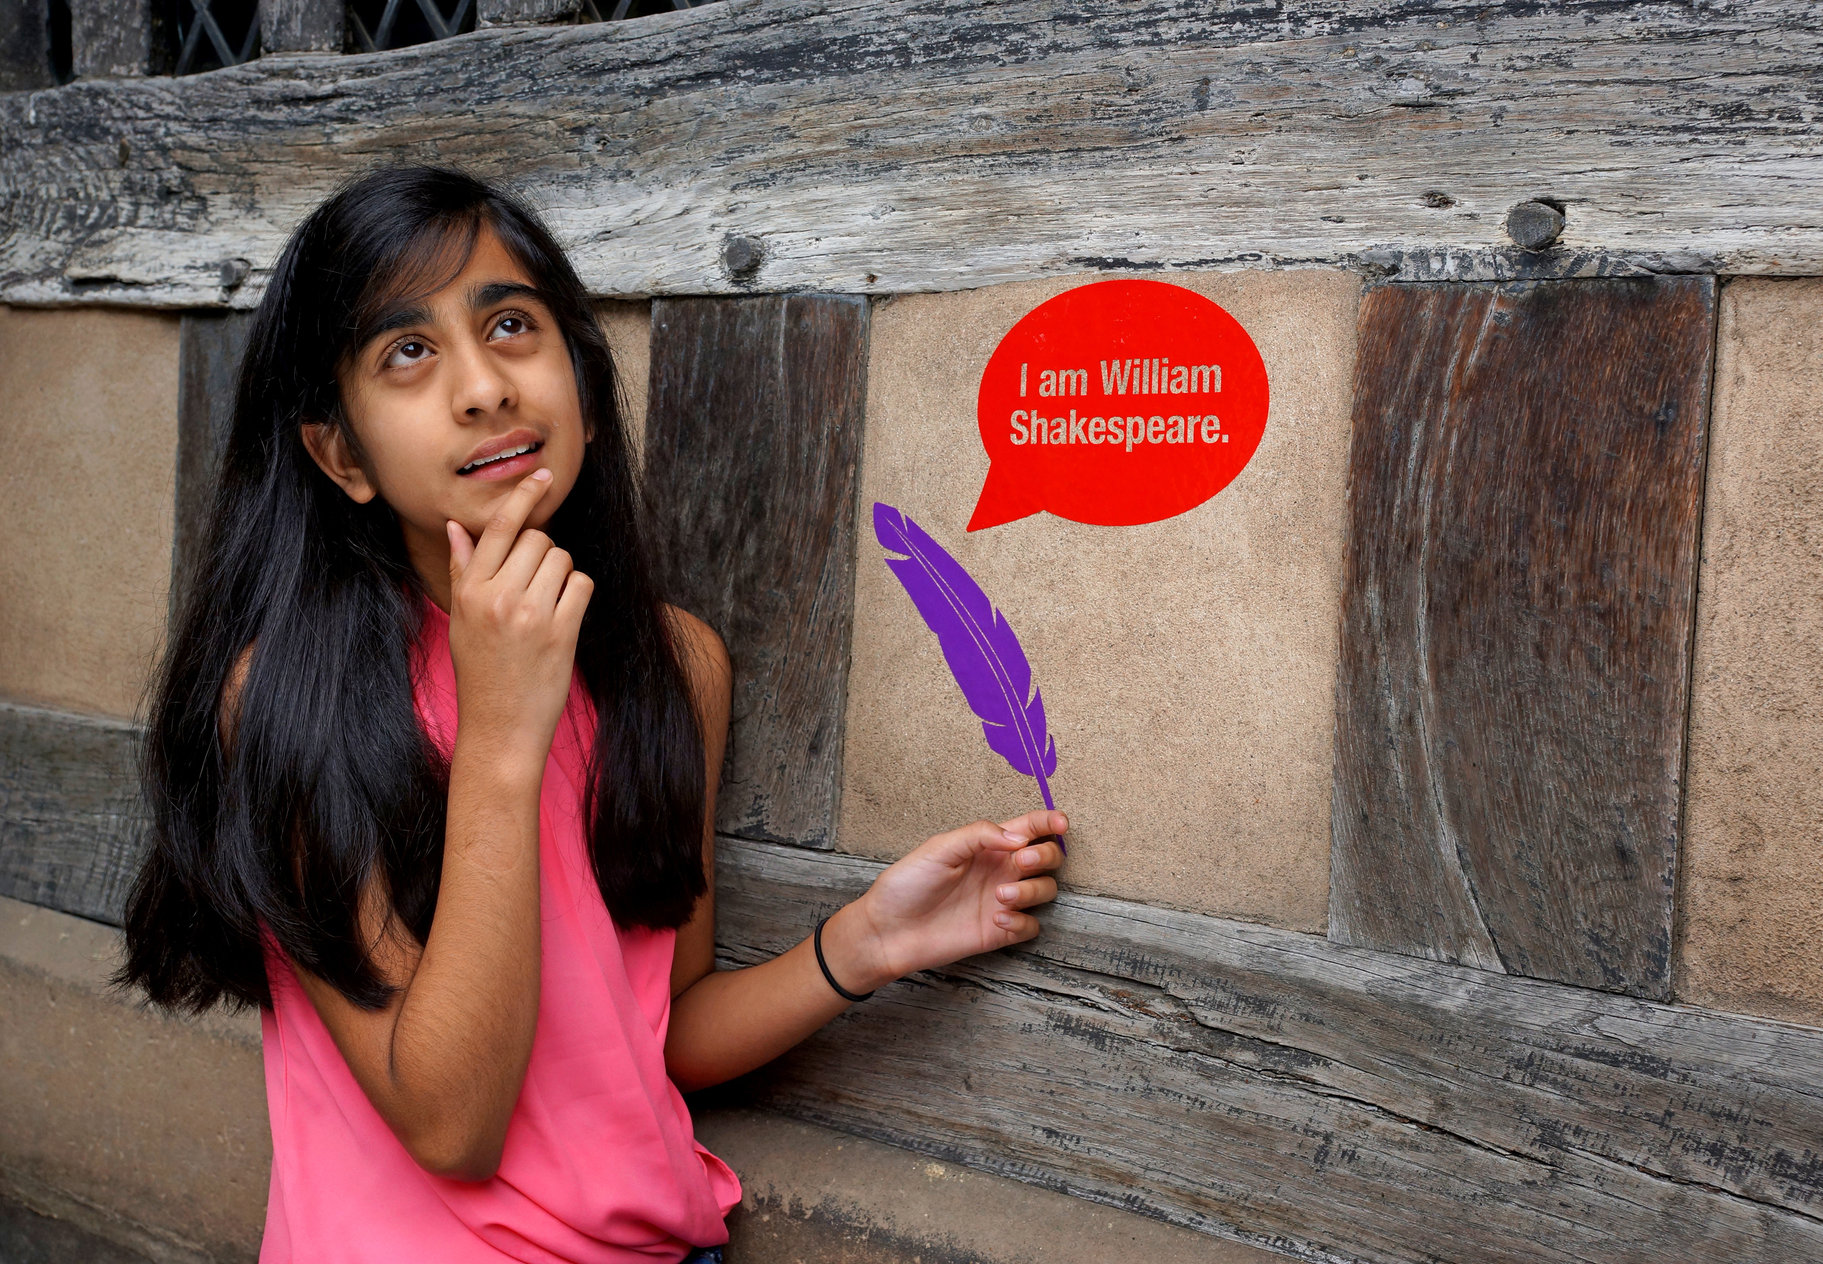 A girl standing in front of a historic wall, on which are a purple quill and a red speech bubble reading 'I am William Shakespeare'.